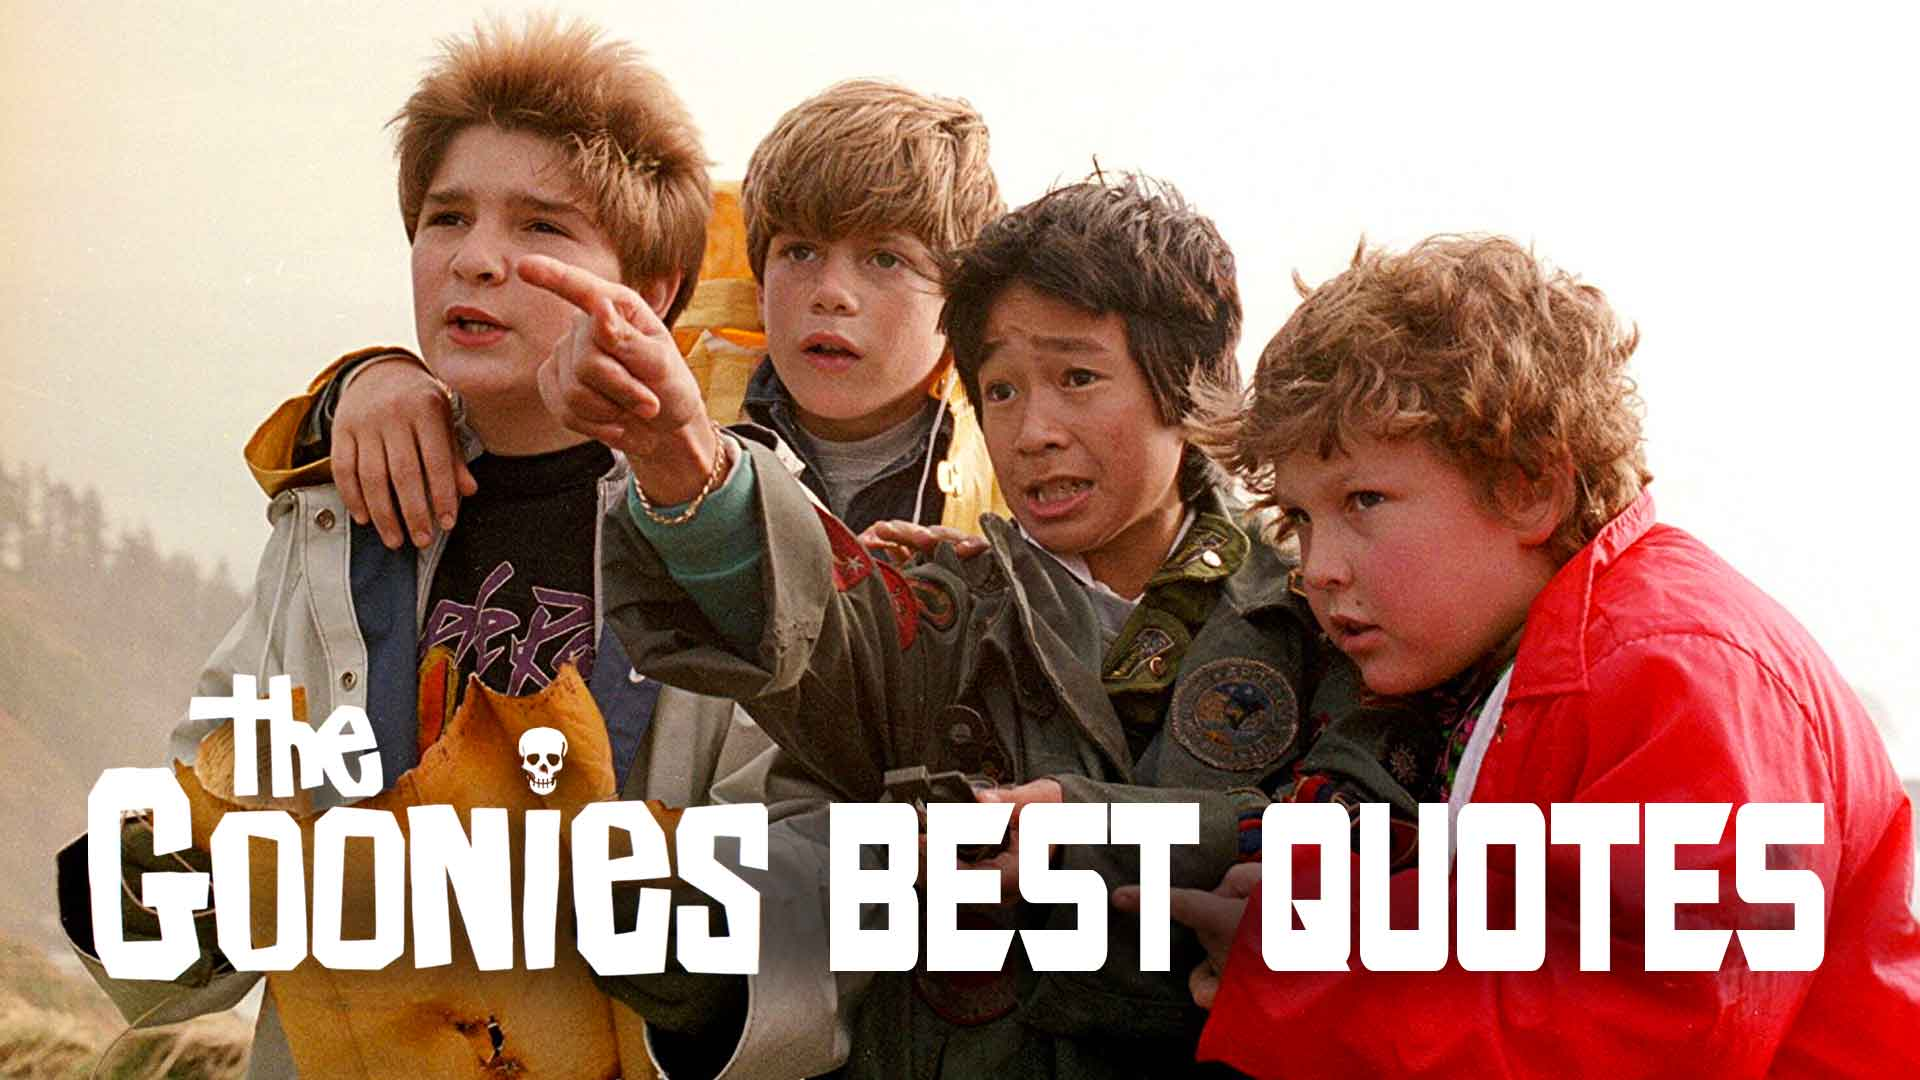 30 Awesome Goonies Quotes From Steven Spielberg\'s Classic Film